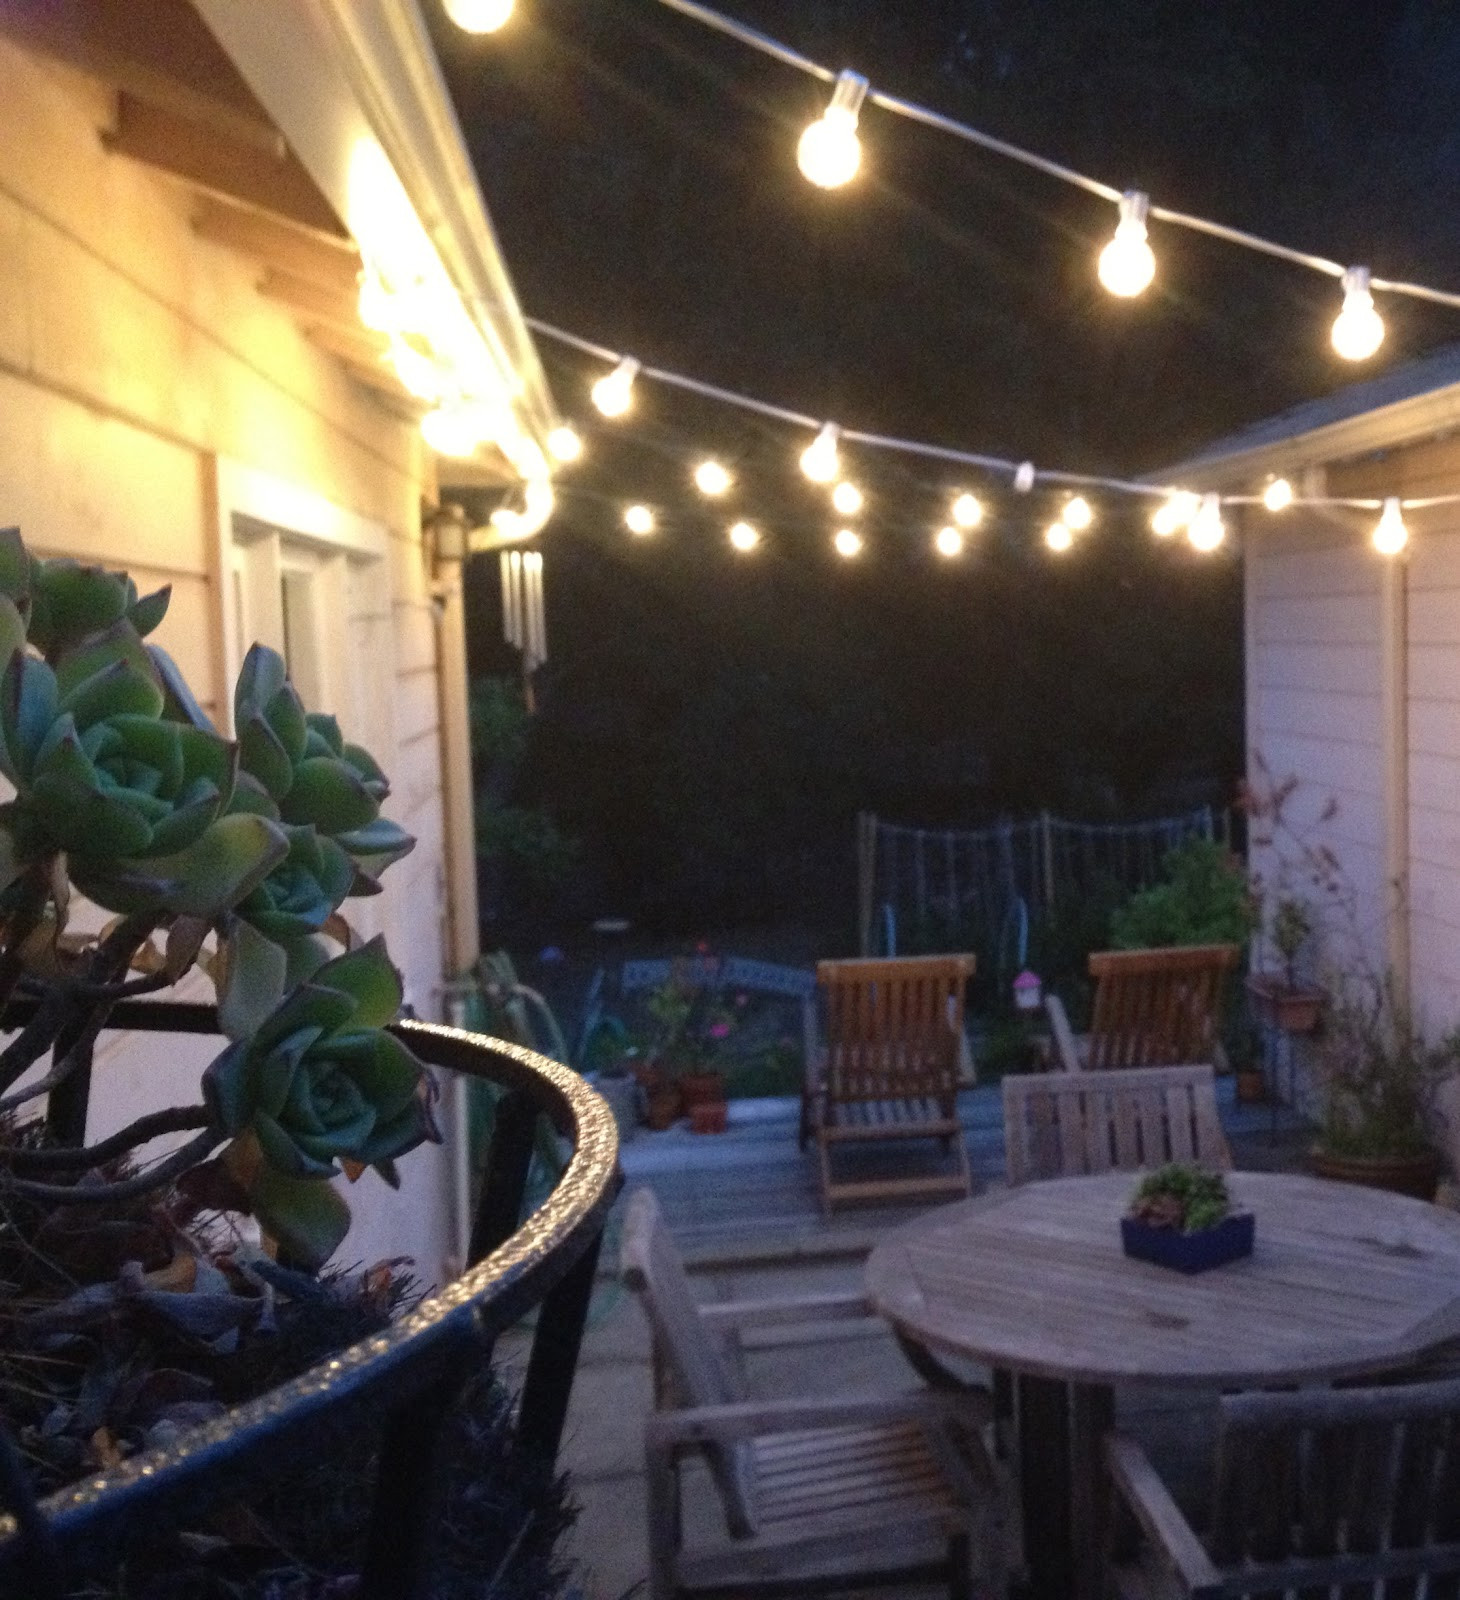 Best ideas about Backyard String Lights . Save or Pin Our Home Now.